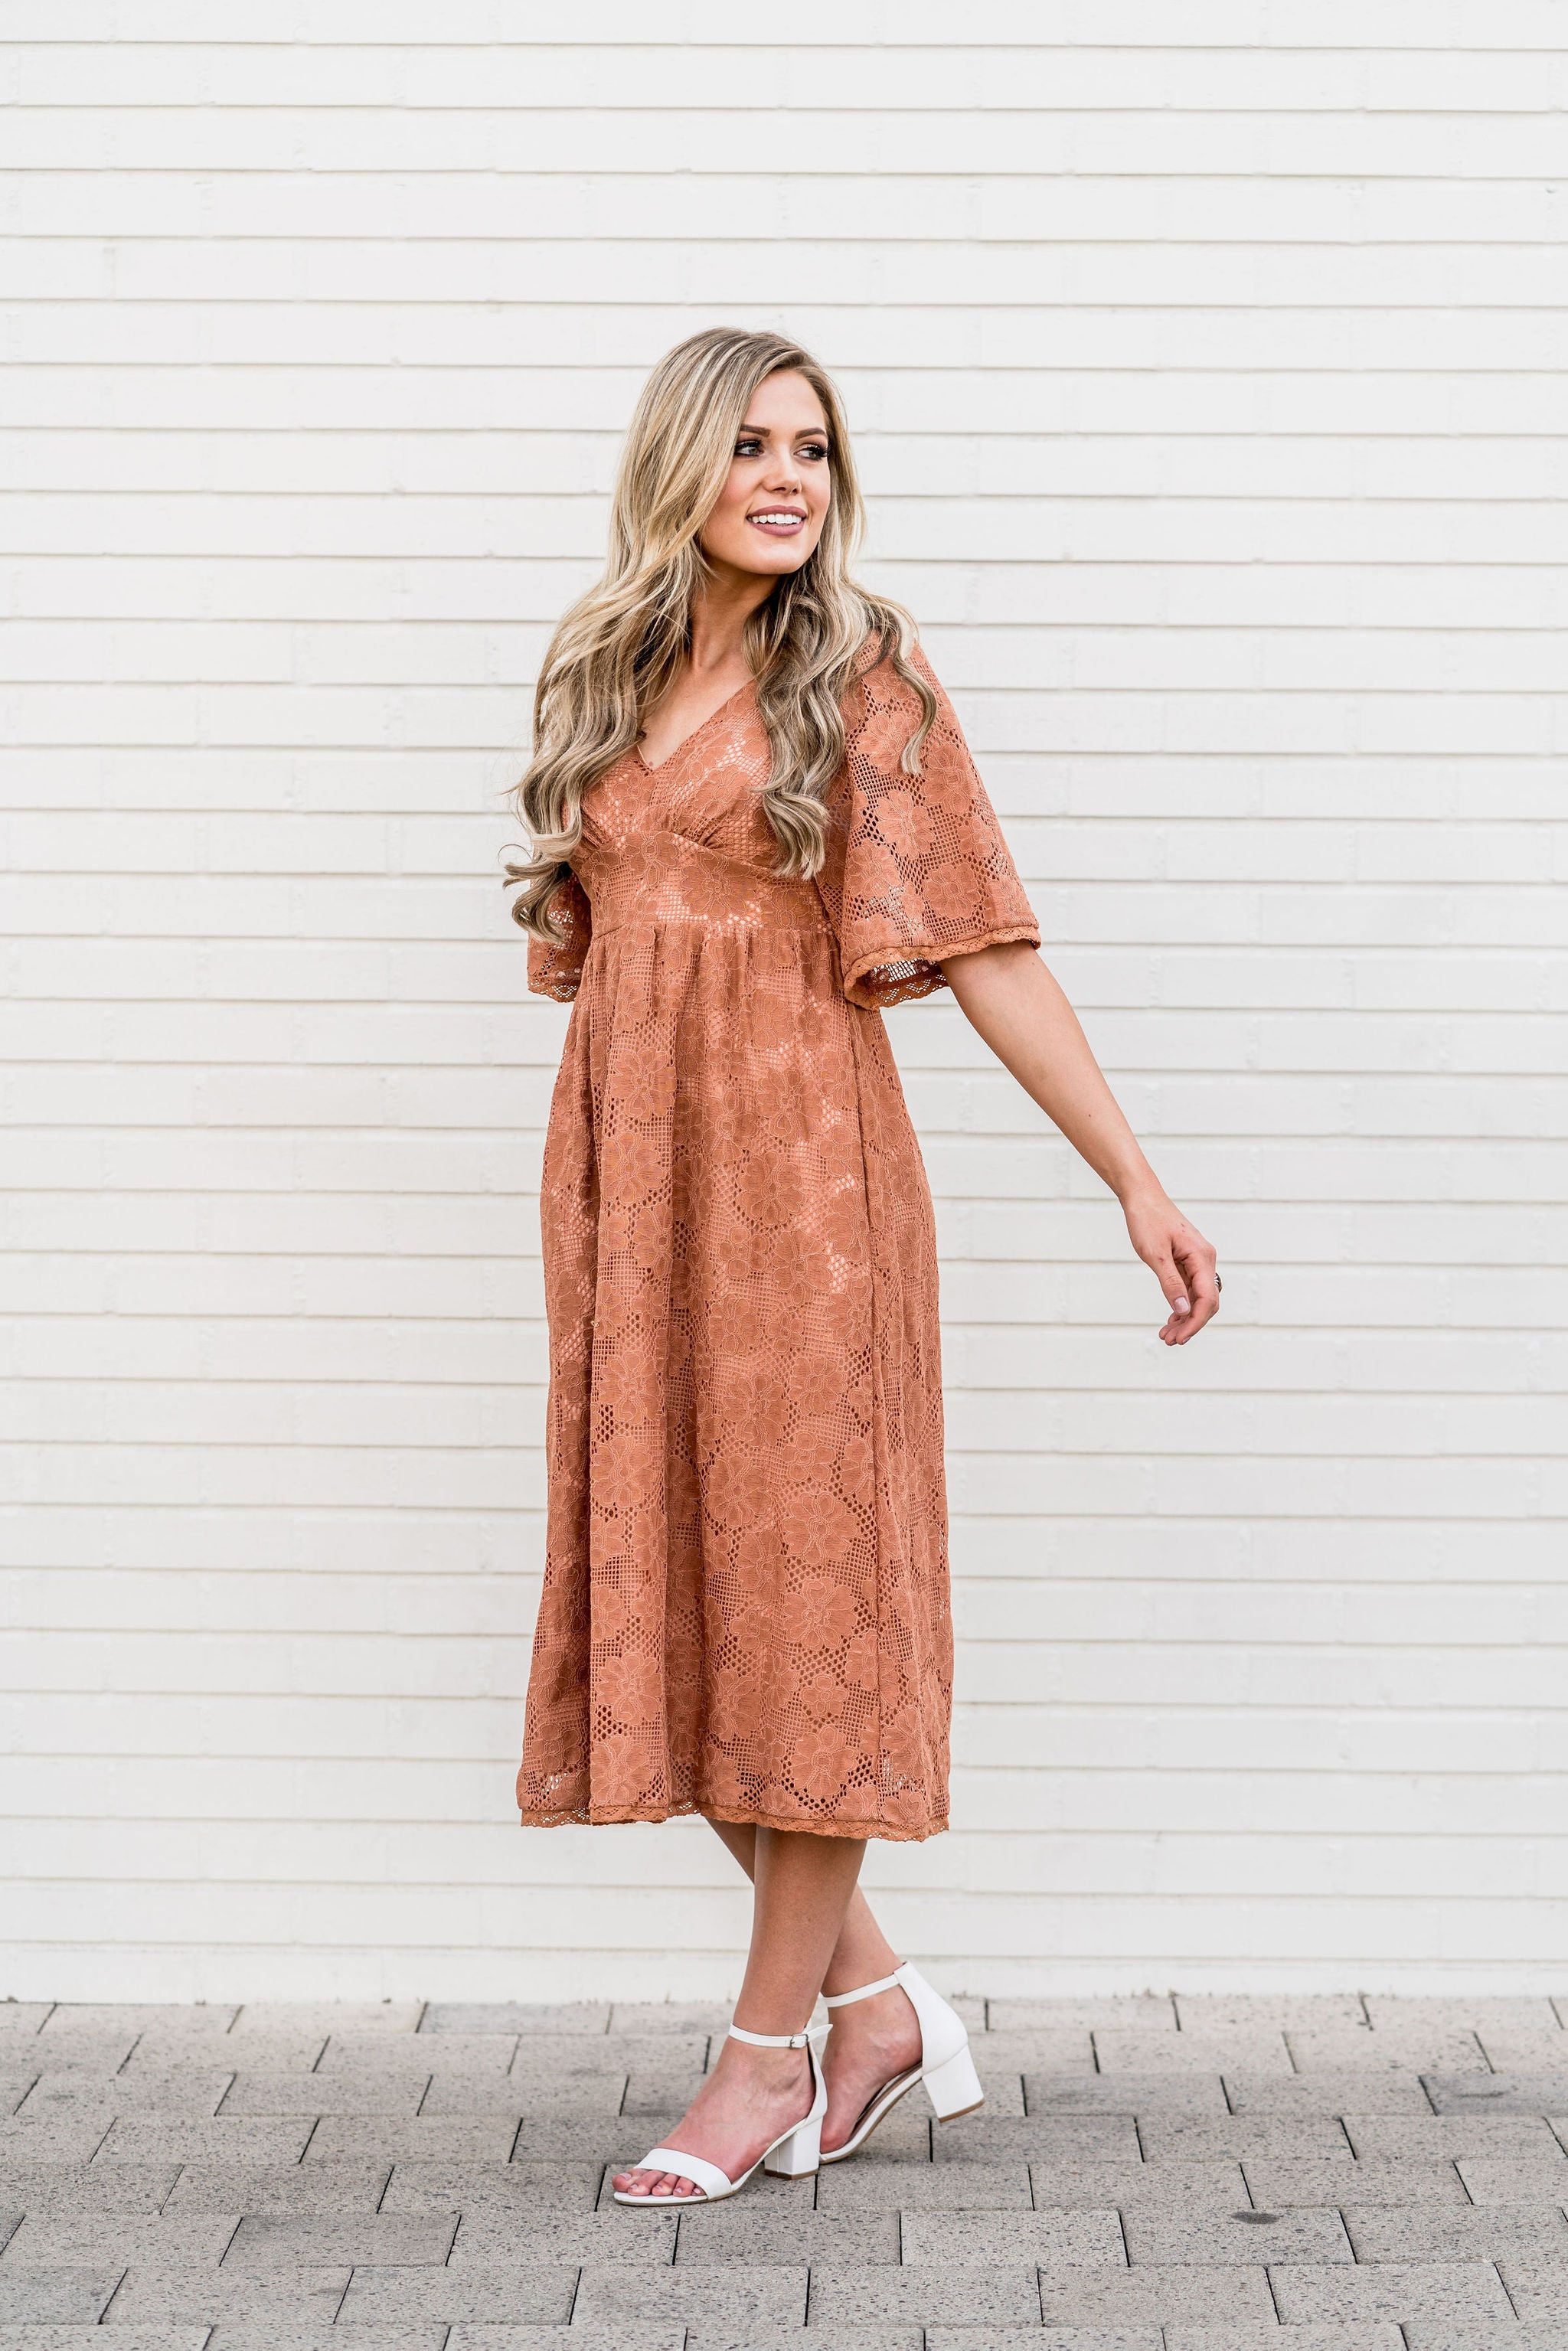 THE HARLOW TEXTURED MIDI DRESS IN BURNT ORANGE